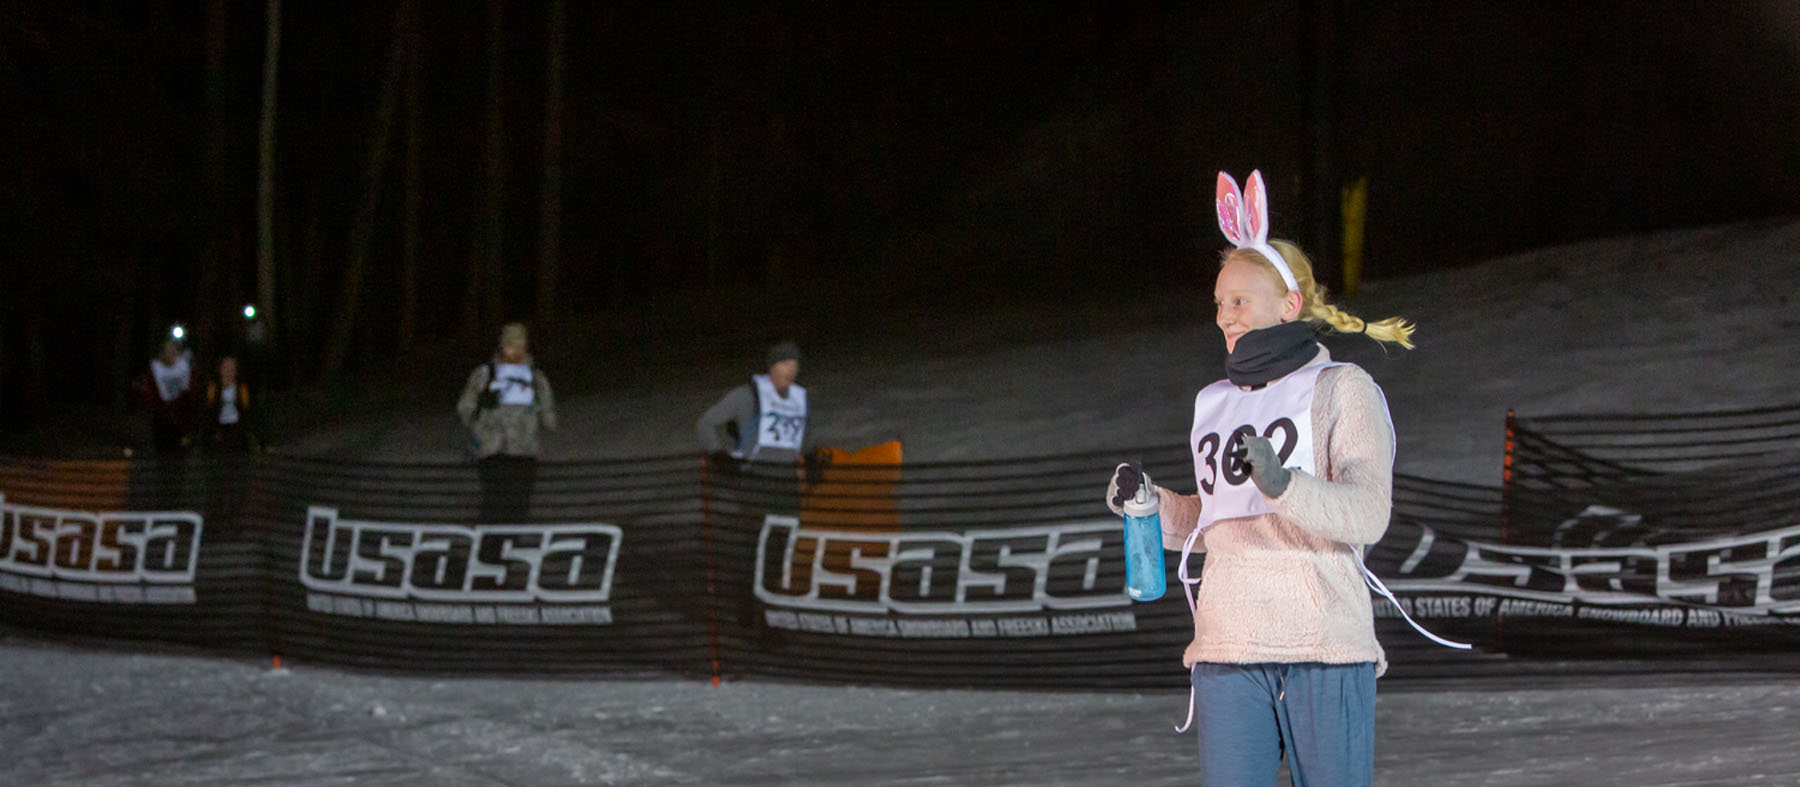 The Kahtoola Uphill celebrated its 13th year on February, 8, 2020 at the Arizona Snowbowl. The Kahtoola is a fun, family-friendly annual mountain race designed to encourage human-powered movement and a fundraiser for Friends of Camp Colton. Photo by Sean Openshaw / www.SeanOpenshaw.com